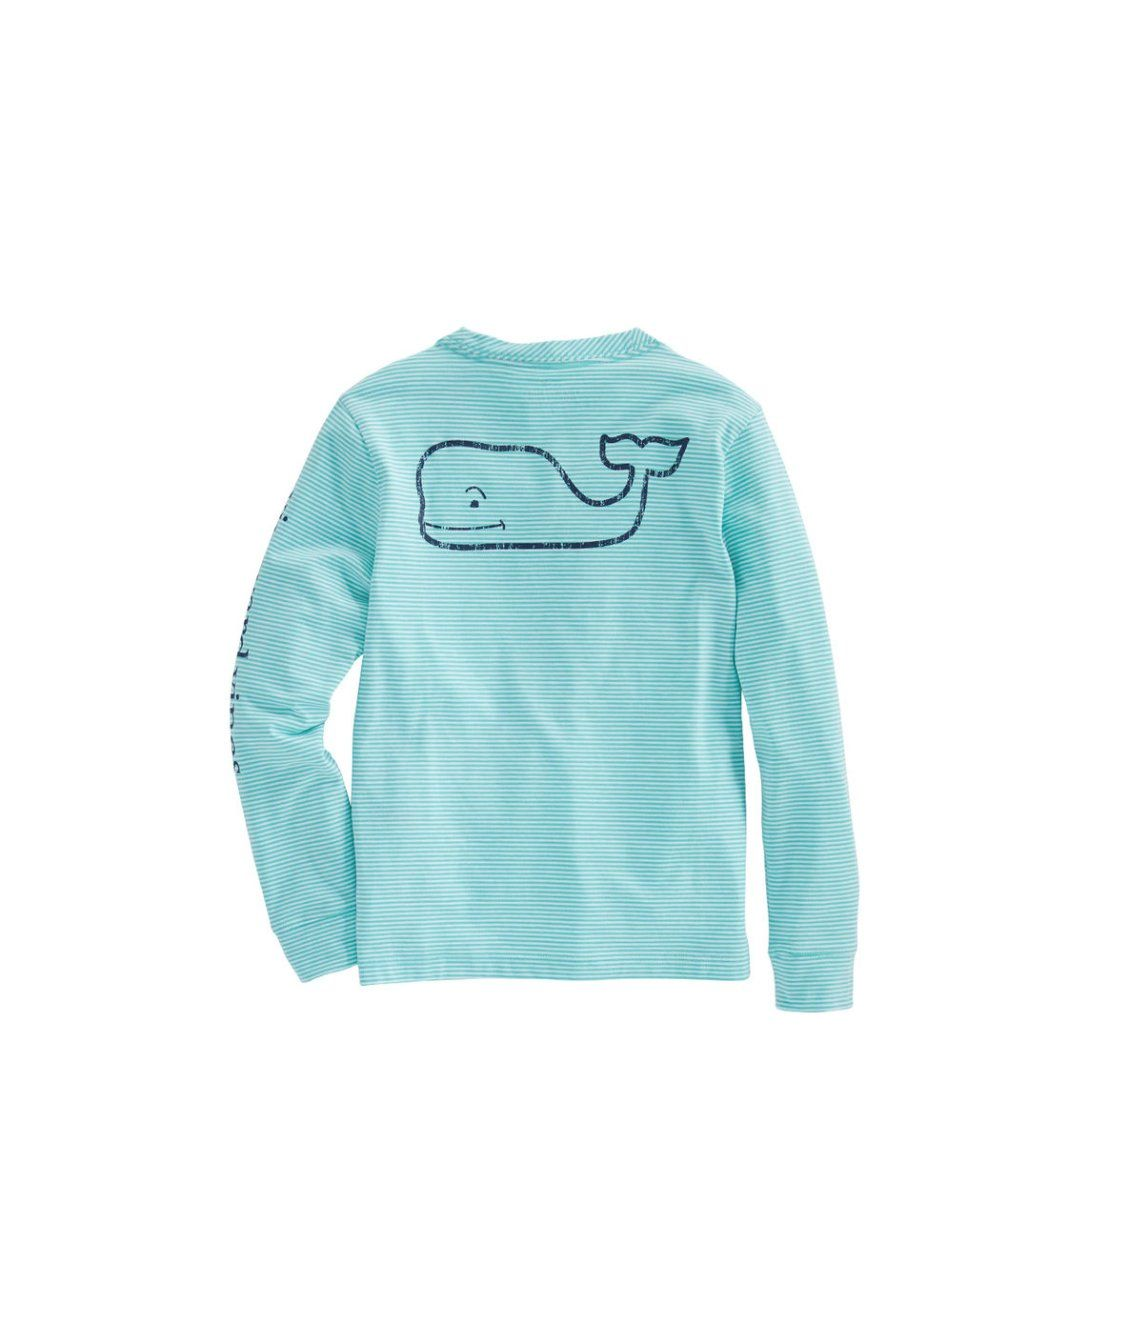 e19d2cea Boys Long-Sleeve Stripe Vintage Whale Edgartown T-Shirt | new ...